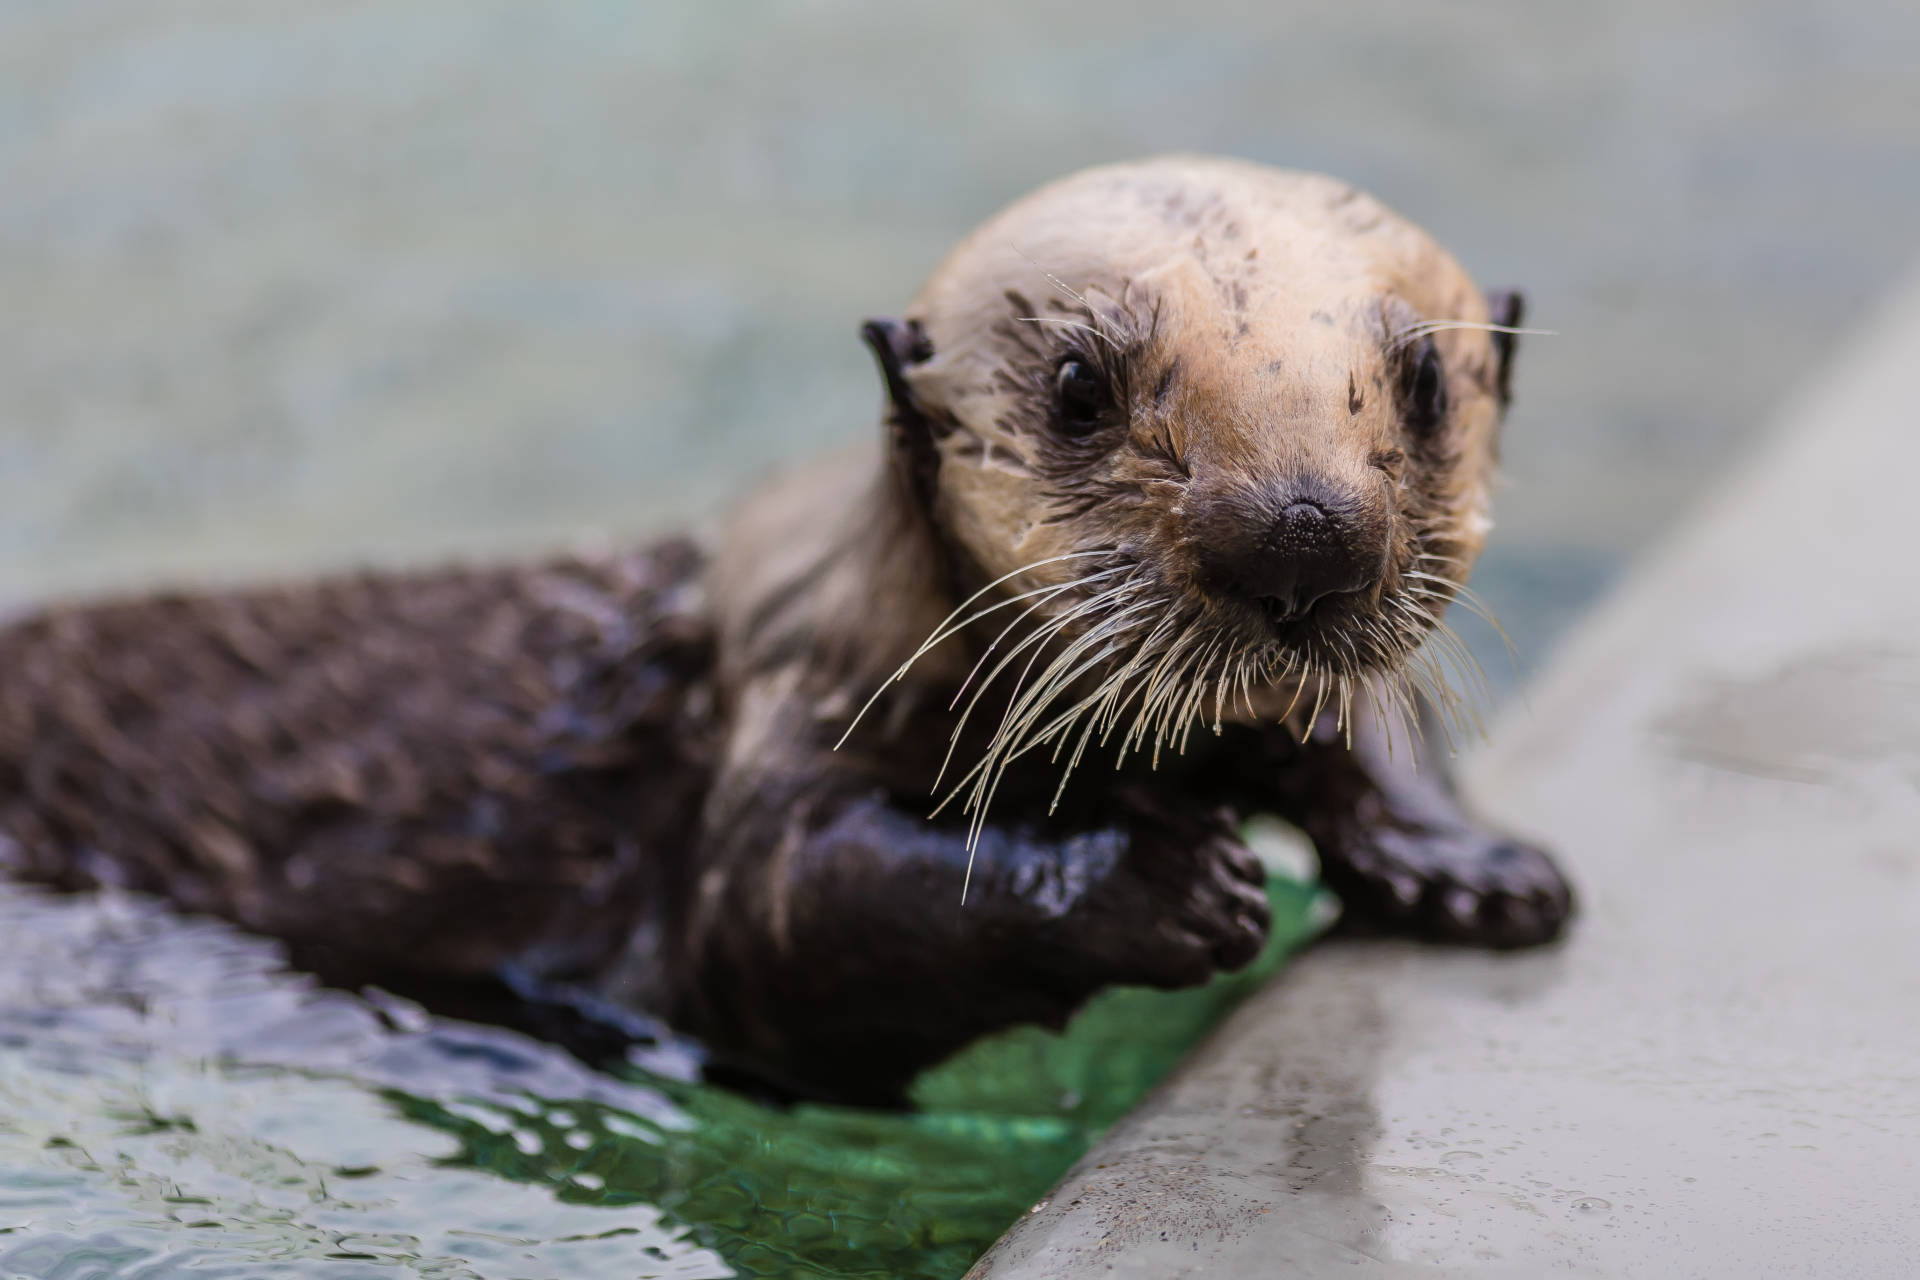 Langly,  a  female  southern  sea  otter  pup,  steps  out  of  her  pool  while  in  rehabilitation  at  The  Marine  Mammal  Center.    Bill  Hunnewell  ©The  Marine  Mammal  Center_USFWS  permit  MA101713-1